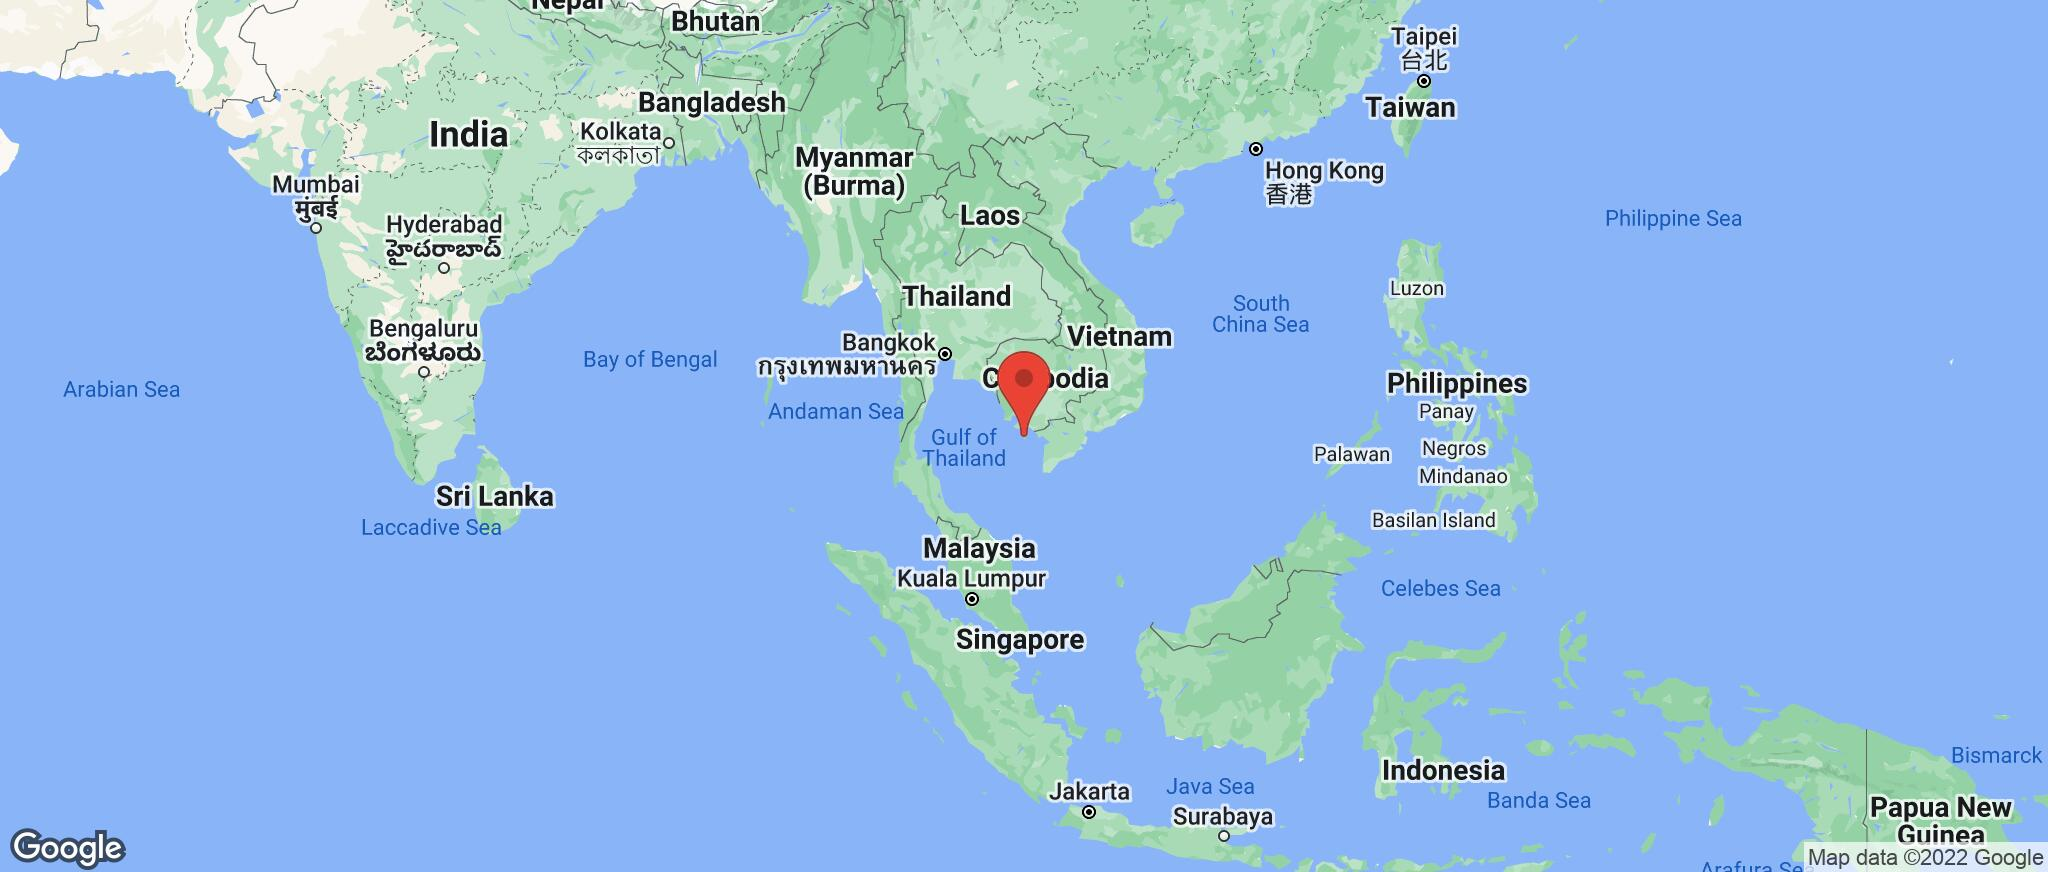 Map showing the location of Vietnam